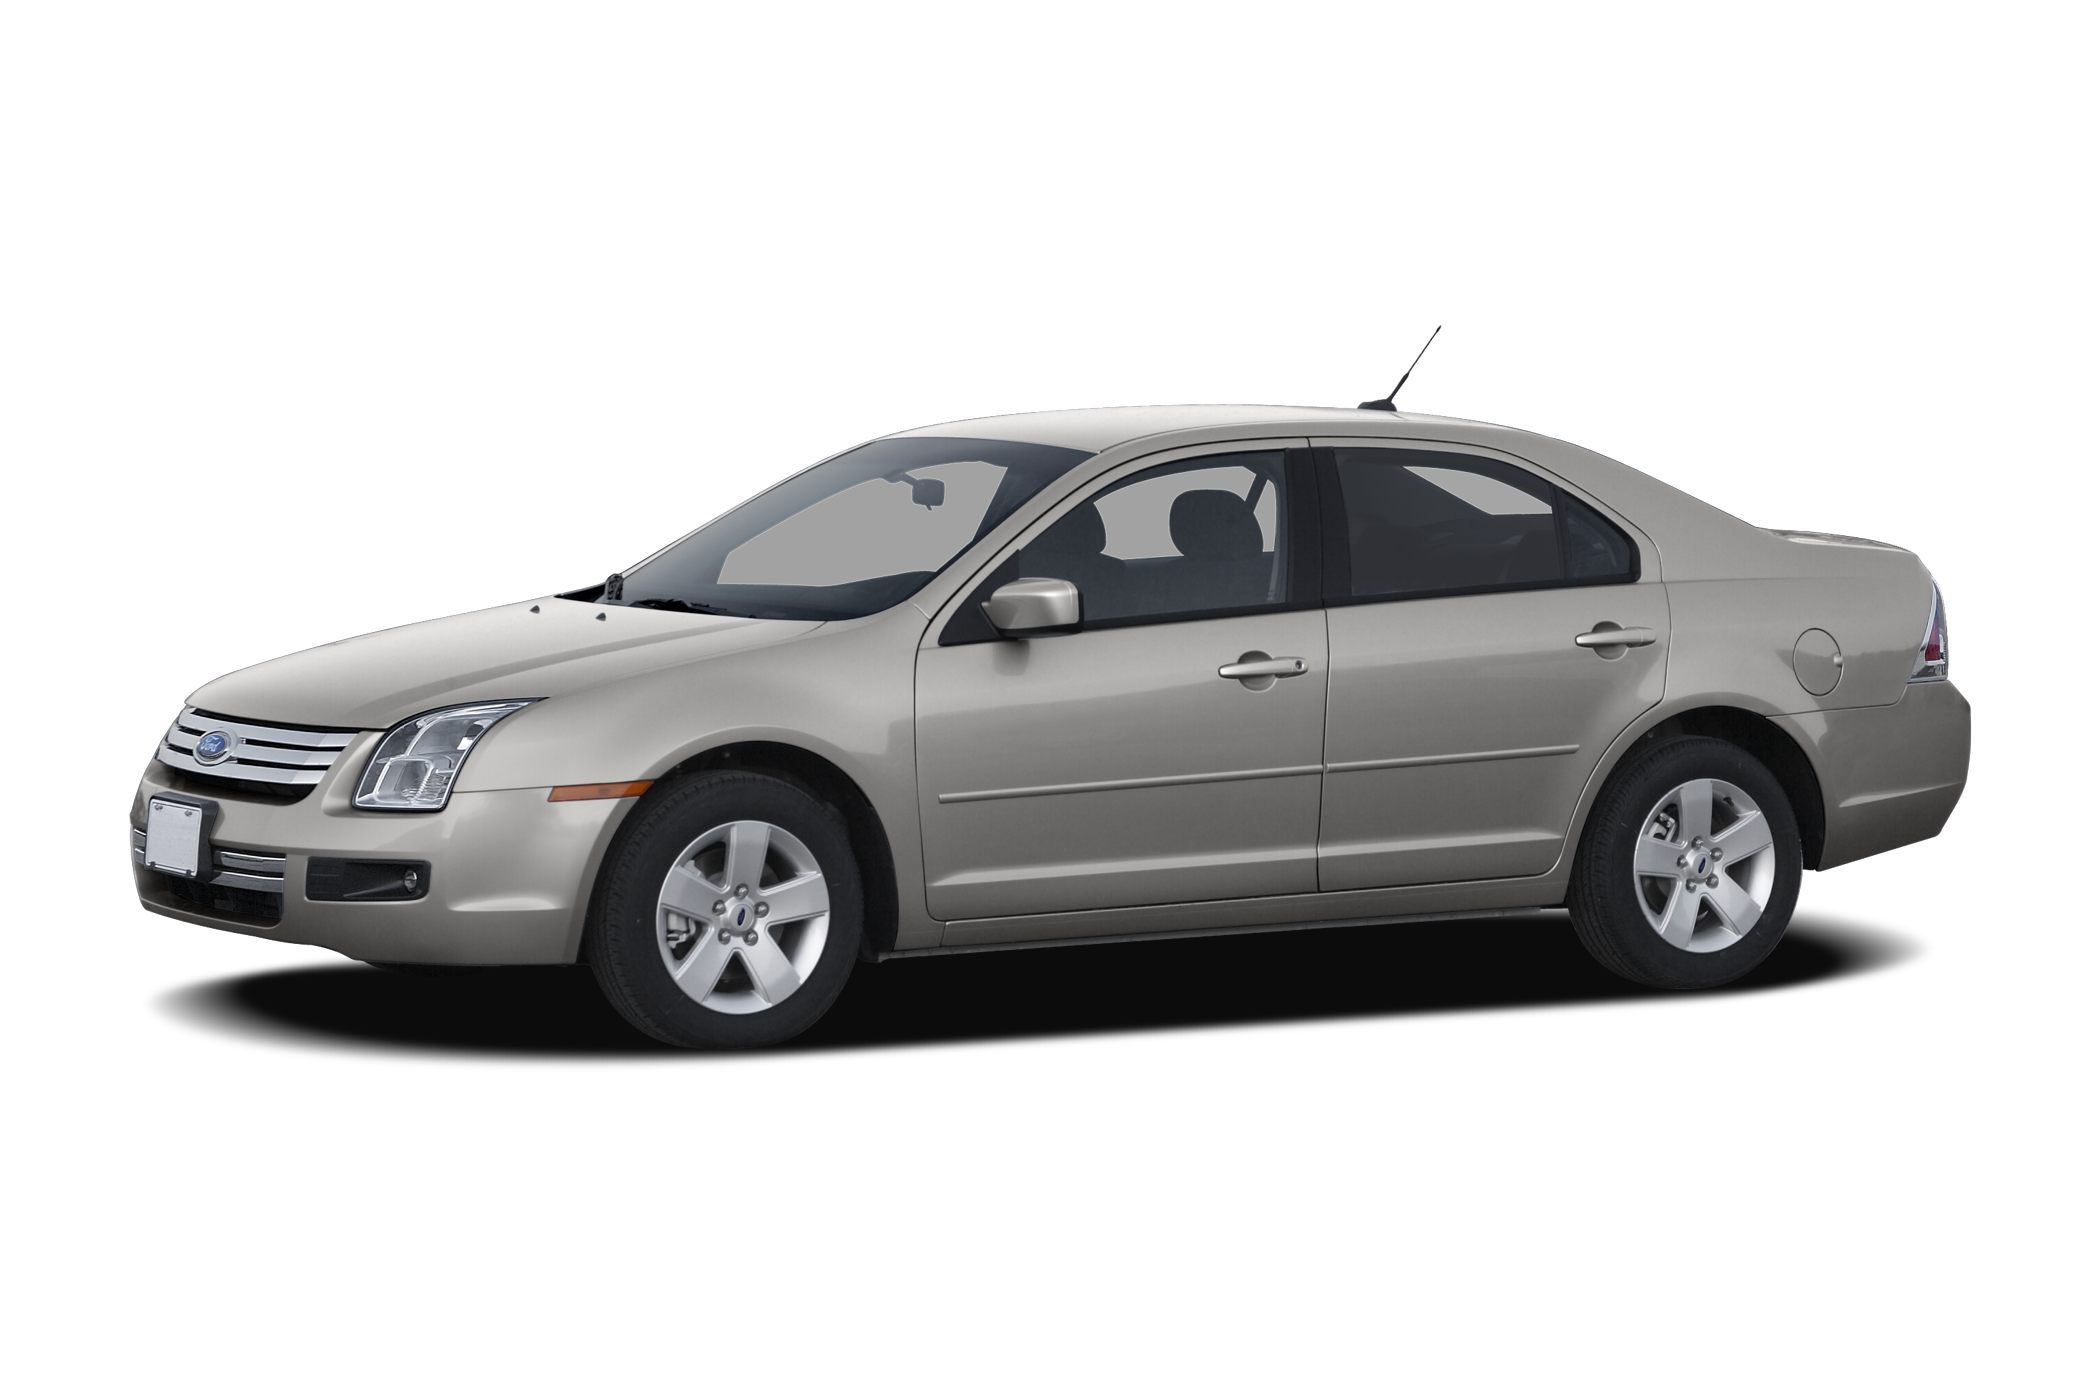 Cheap Good Working Cars for Sale Fresh Used Cars for Sale Less Than 1 000 Dollars